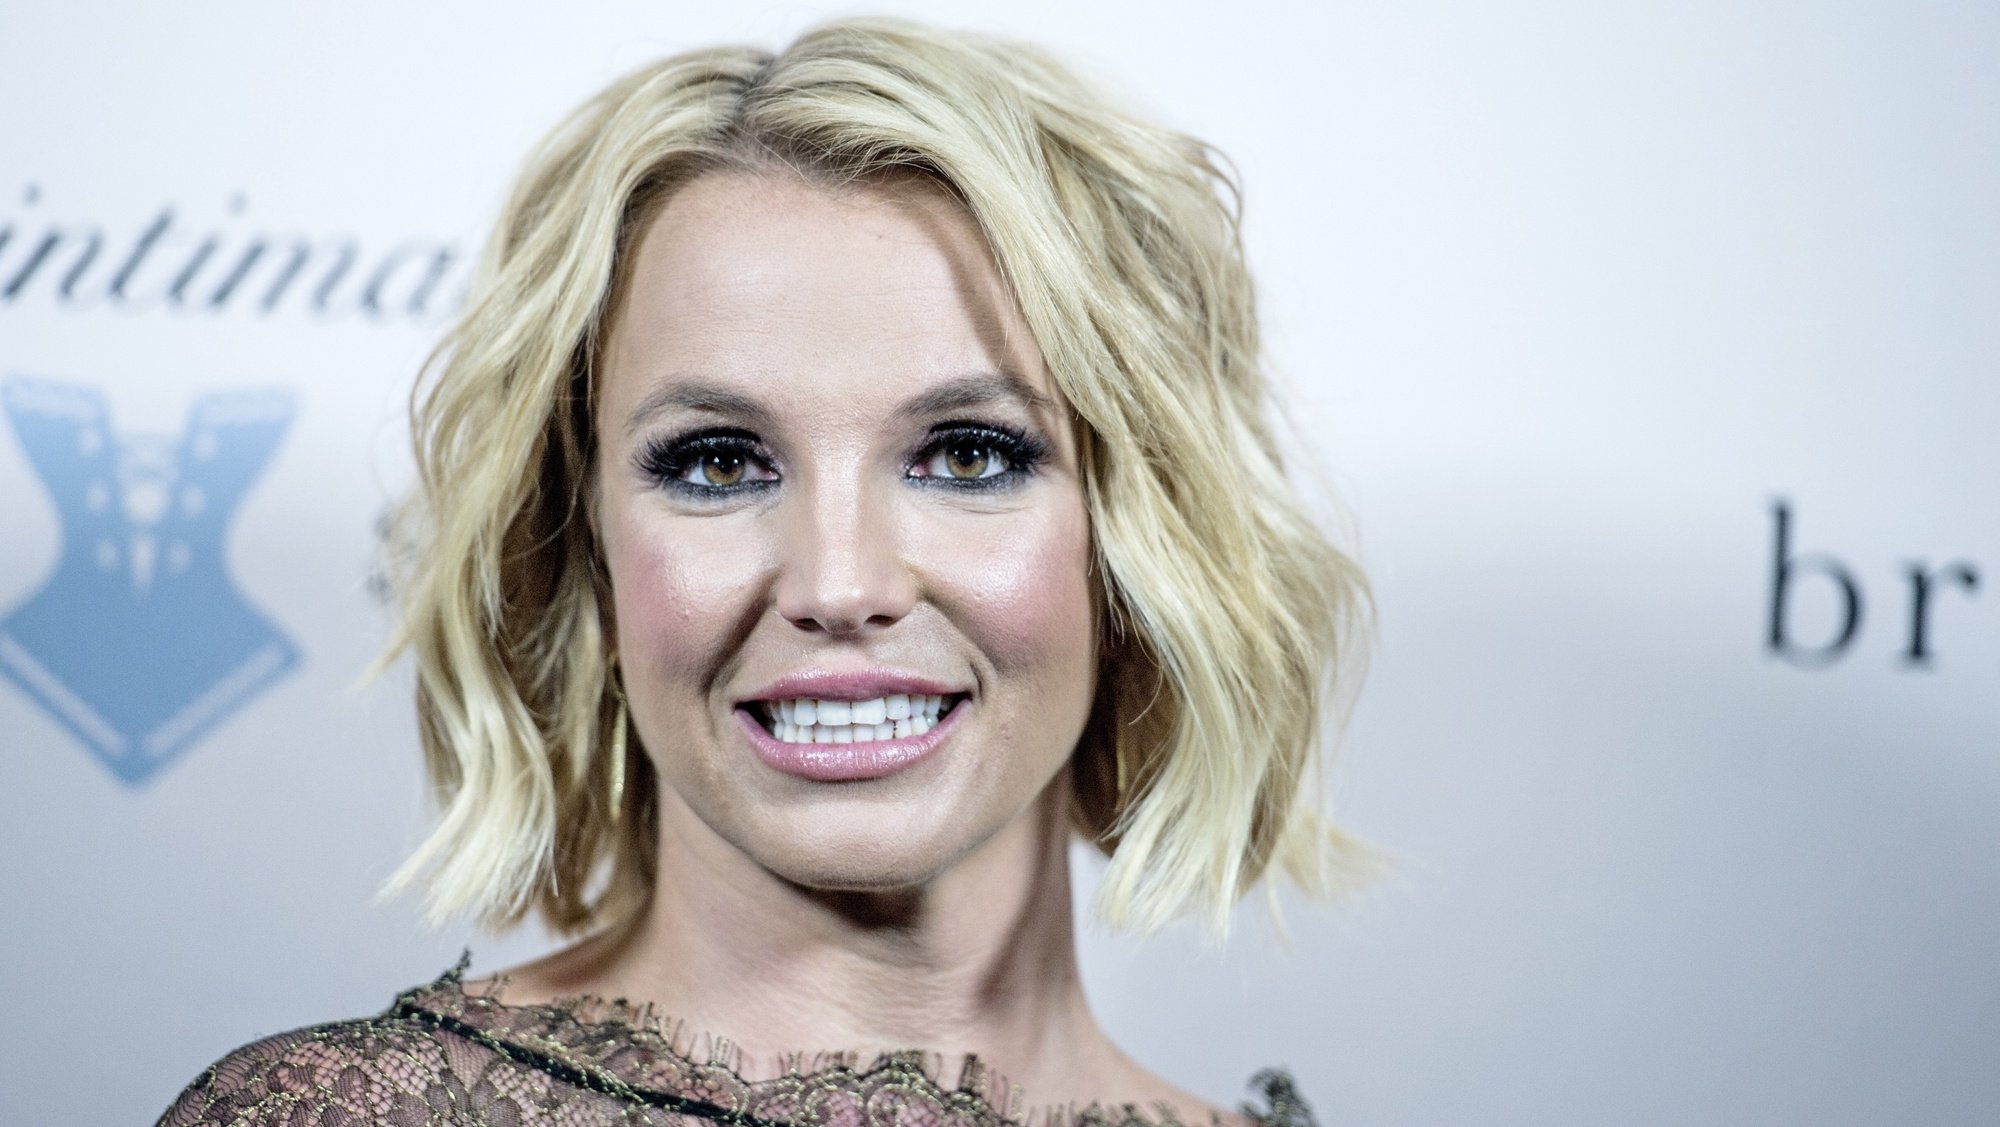 epa08398618 (FILE) - US singer Britney Spears smiles during the launch of her new lingerie brand 'The Intimate Britney Spears' with an event at the Forum in Copenhagen, Denmark, 25 September 2014 (reissued 03 May 2020). Reports from 02 May 2020 state that a judge in California extended the conservatorship on Spears until end of August 2020. The reports on an order authorising Britney's temporary conservator's extended term come only few days after Spears accidentally set her gym on fire.  EPA/CHRISTIAN LILIENDAHL  DENMARK OUT *** Local Caption *** 51587619